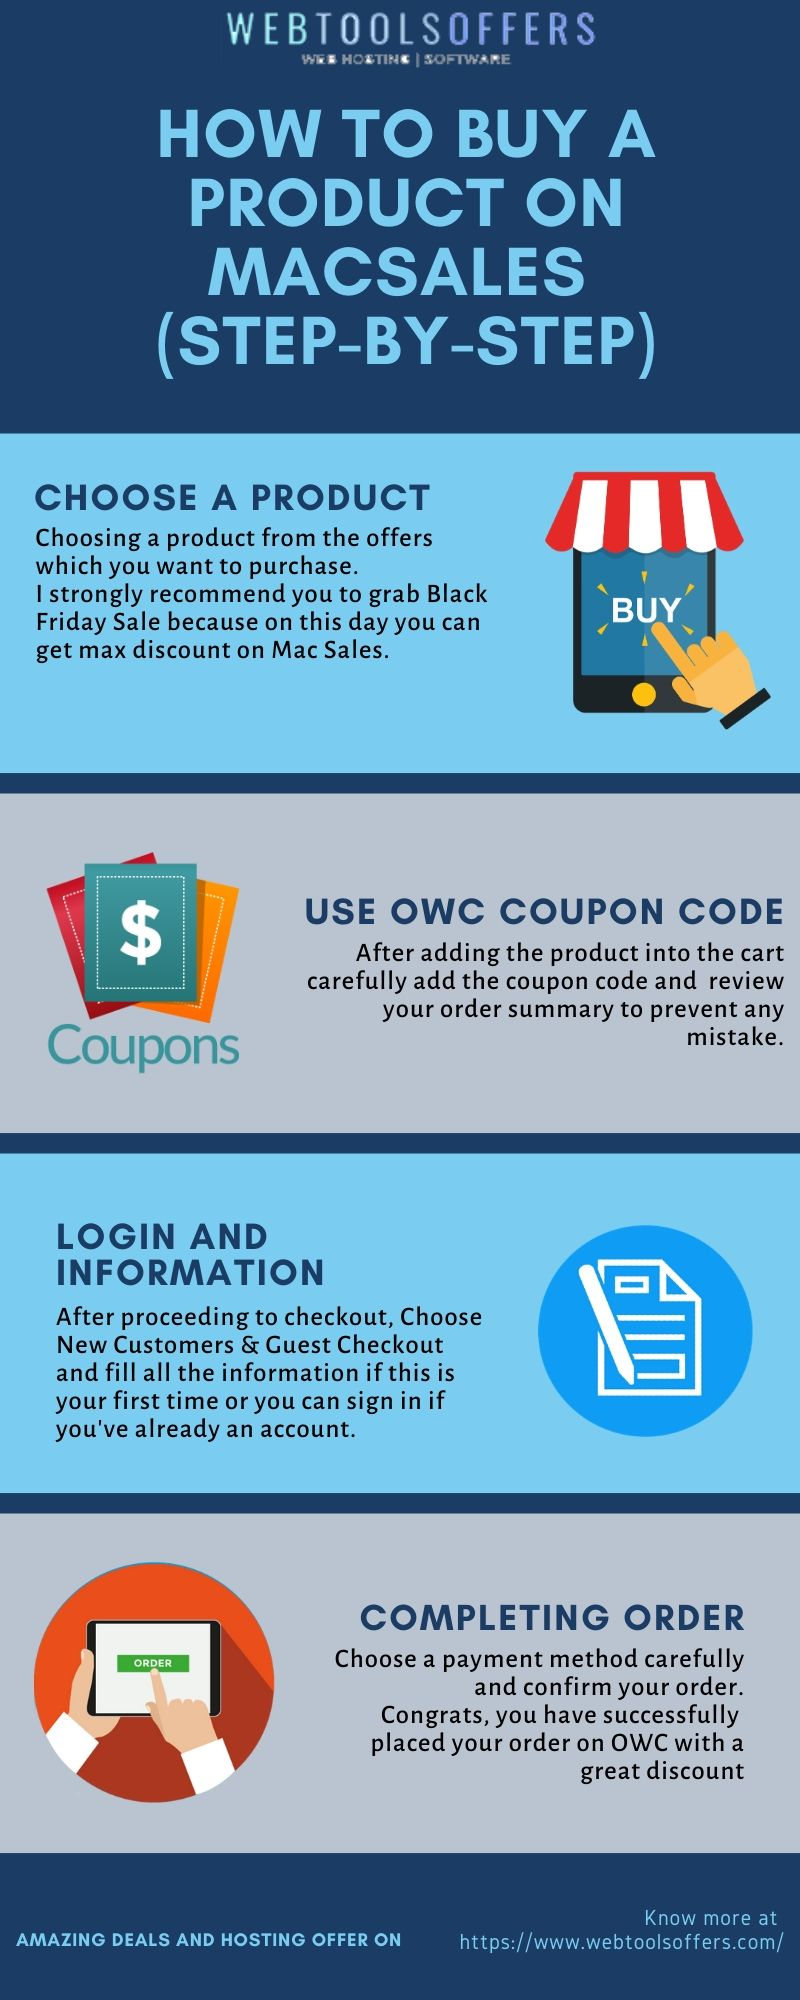 how to use mac sales promo code